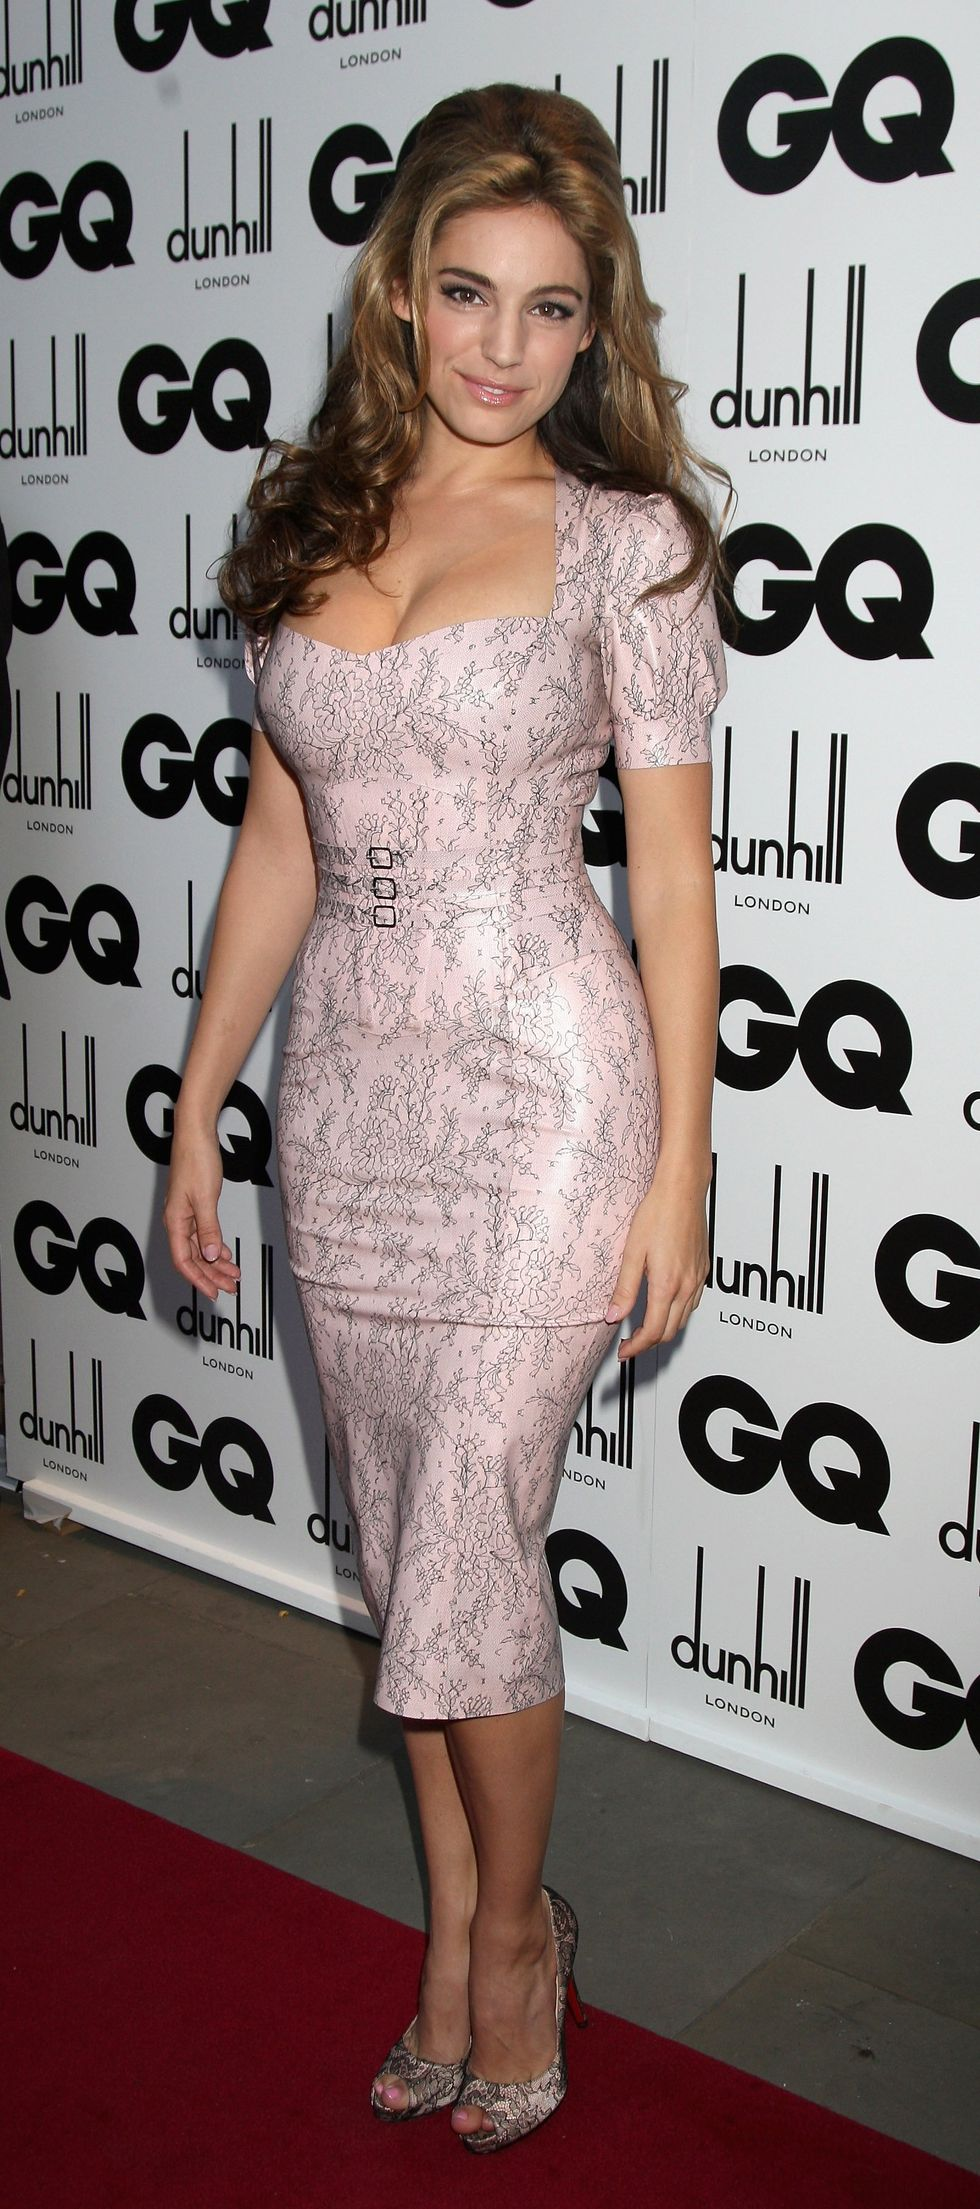 kelly-brook-2009-gq-men-of-the-year-awards-in-london-02